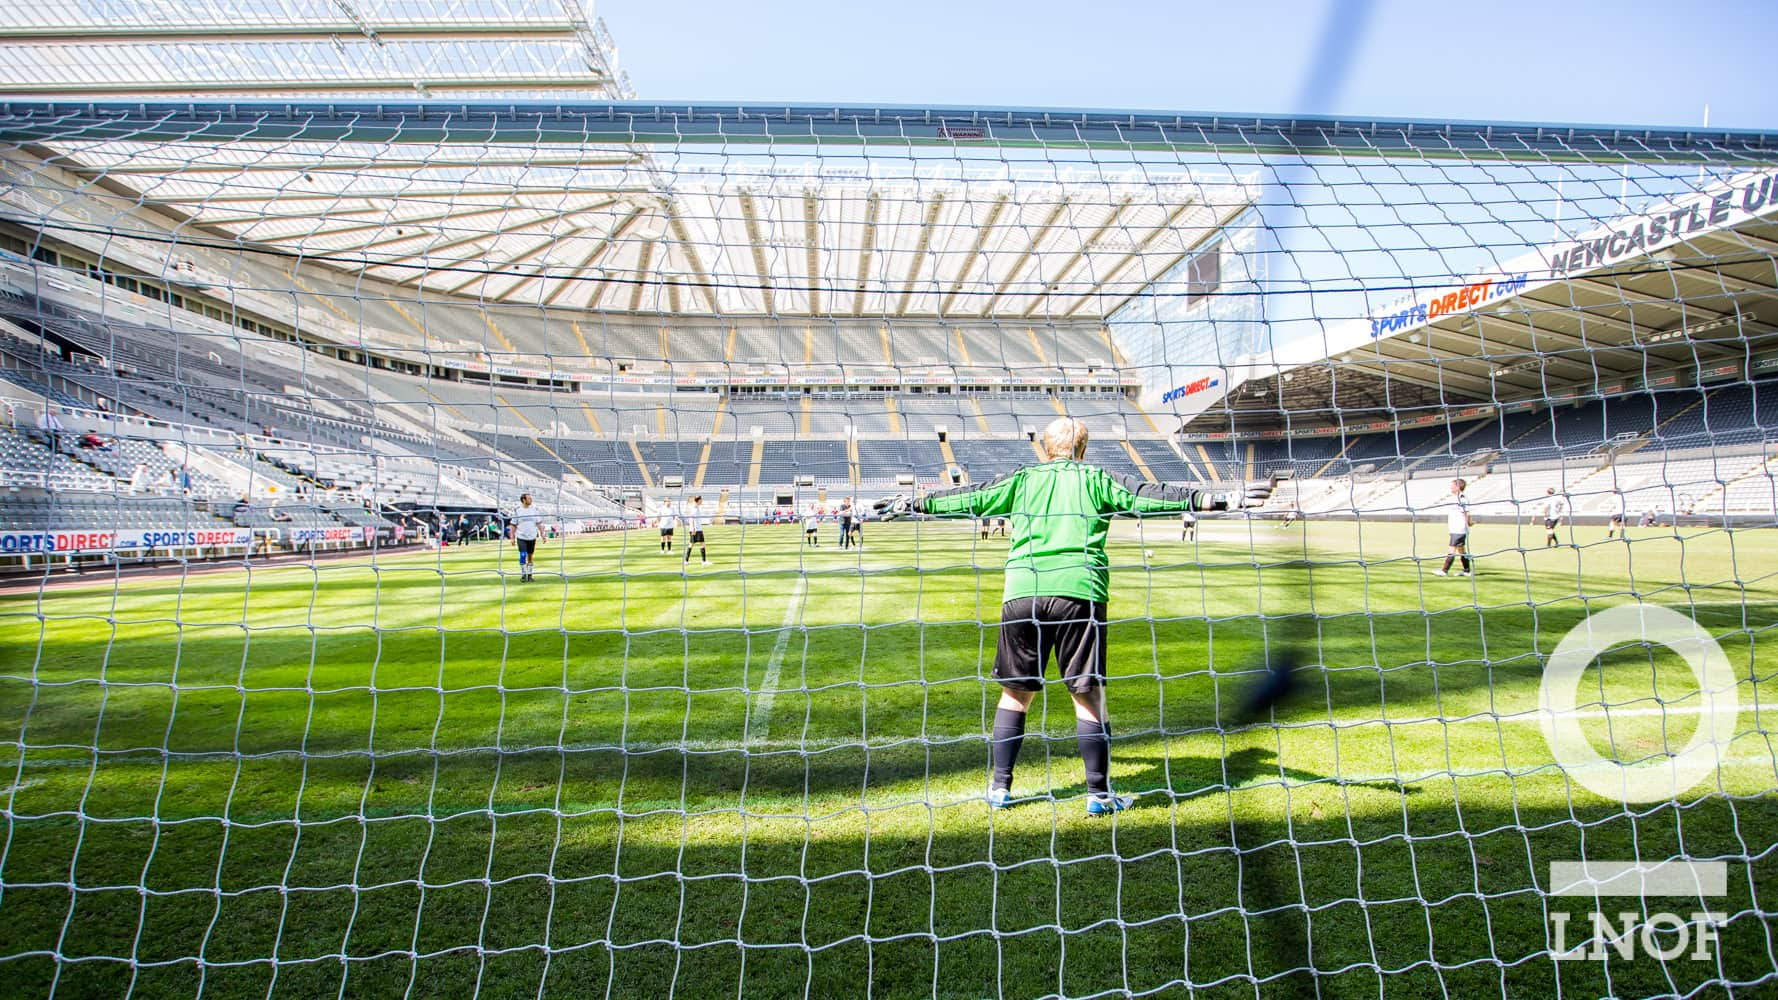 St James' Park from behind the goal